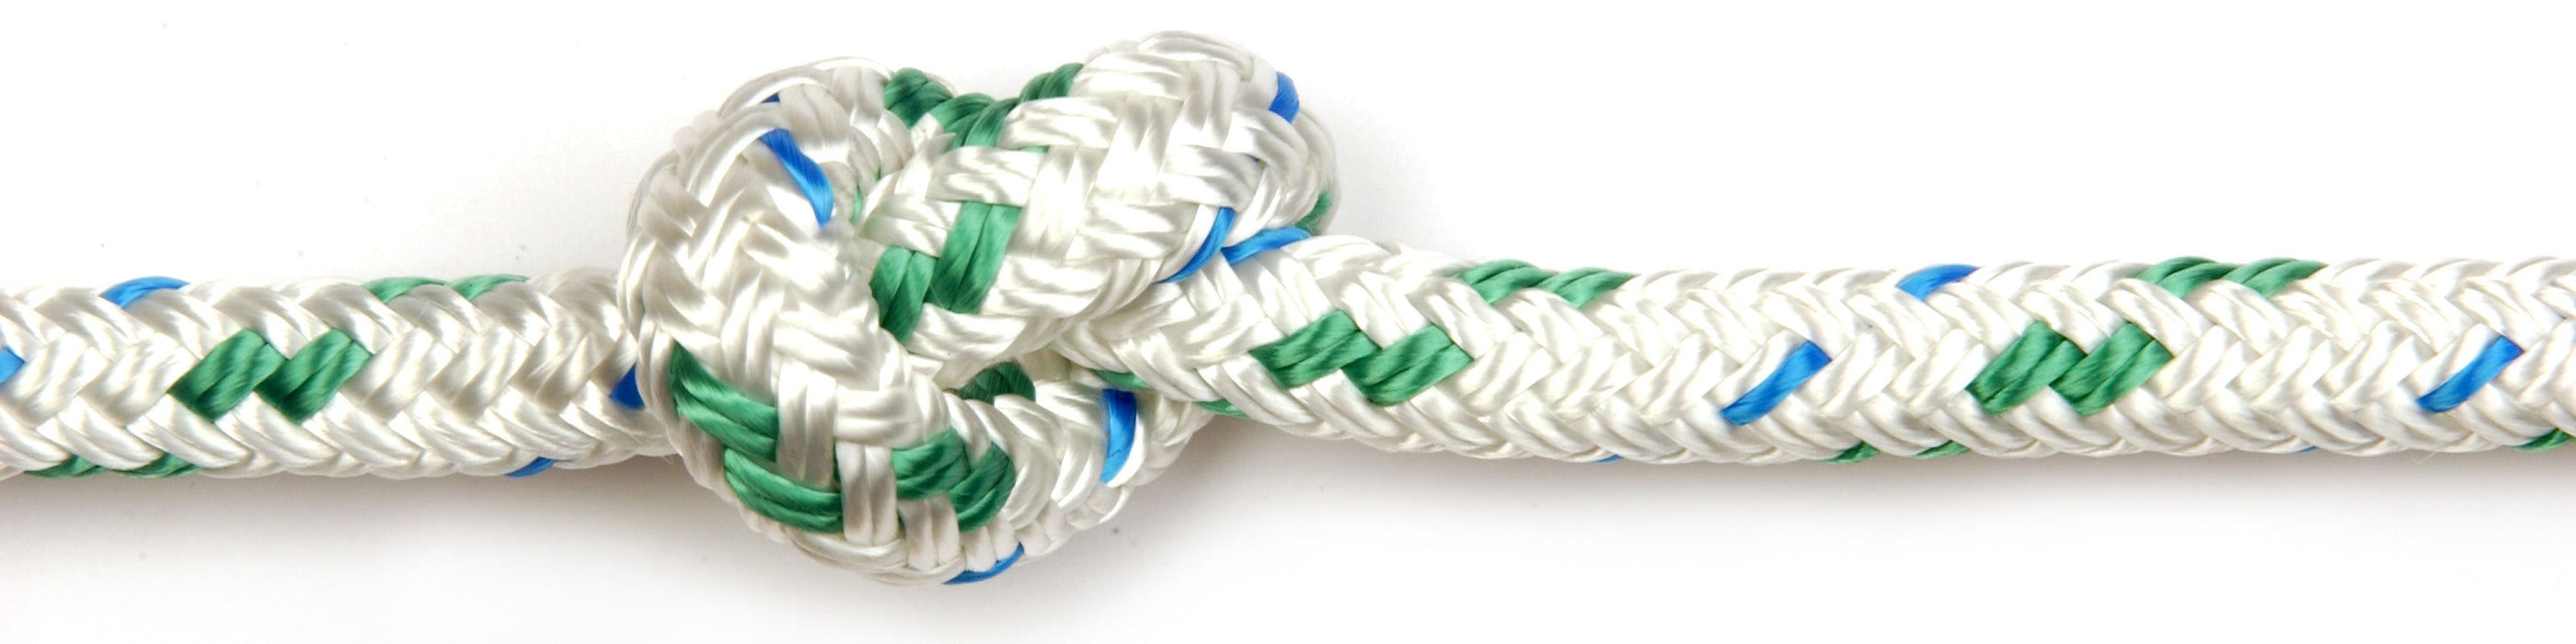 Kingfisher Braid-on-braid polyester rope - Dinghy Shack